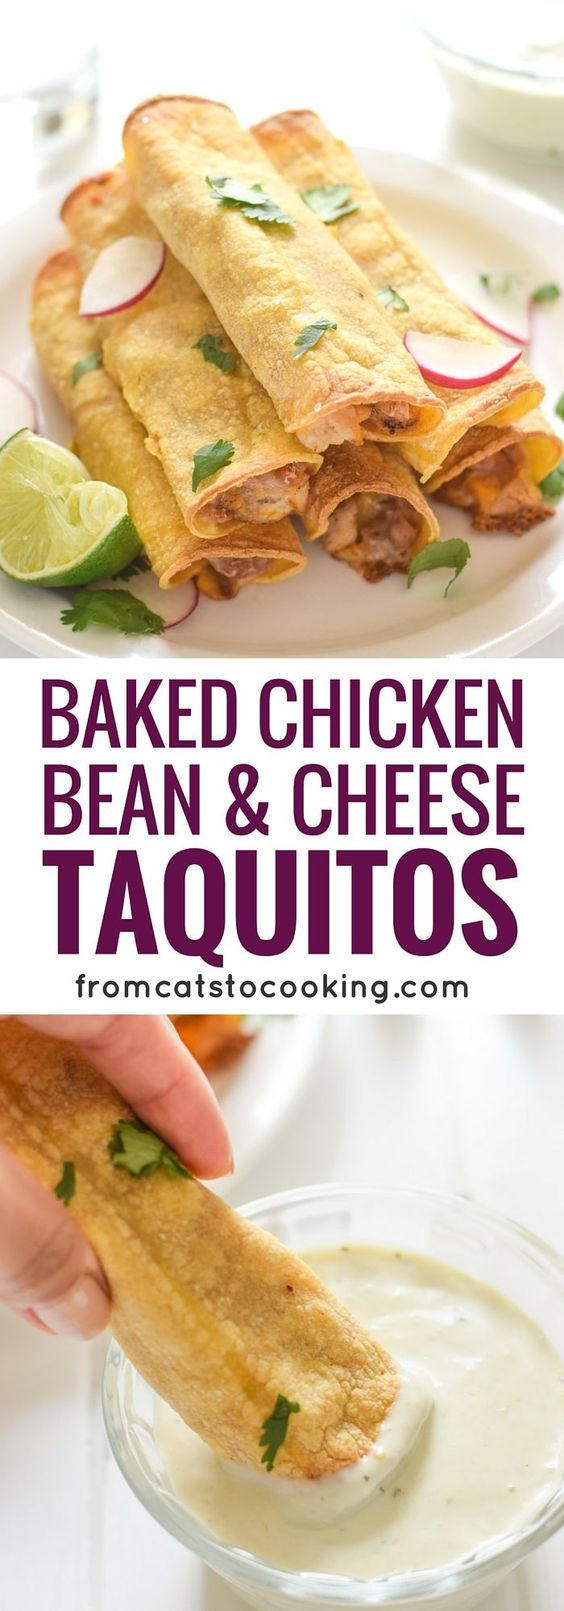 Baked Chicken, Bean and Cheese Taquitos | Recipe | Easy meals, Baked ...